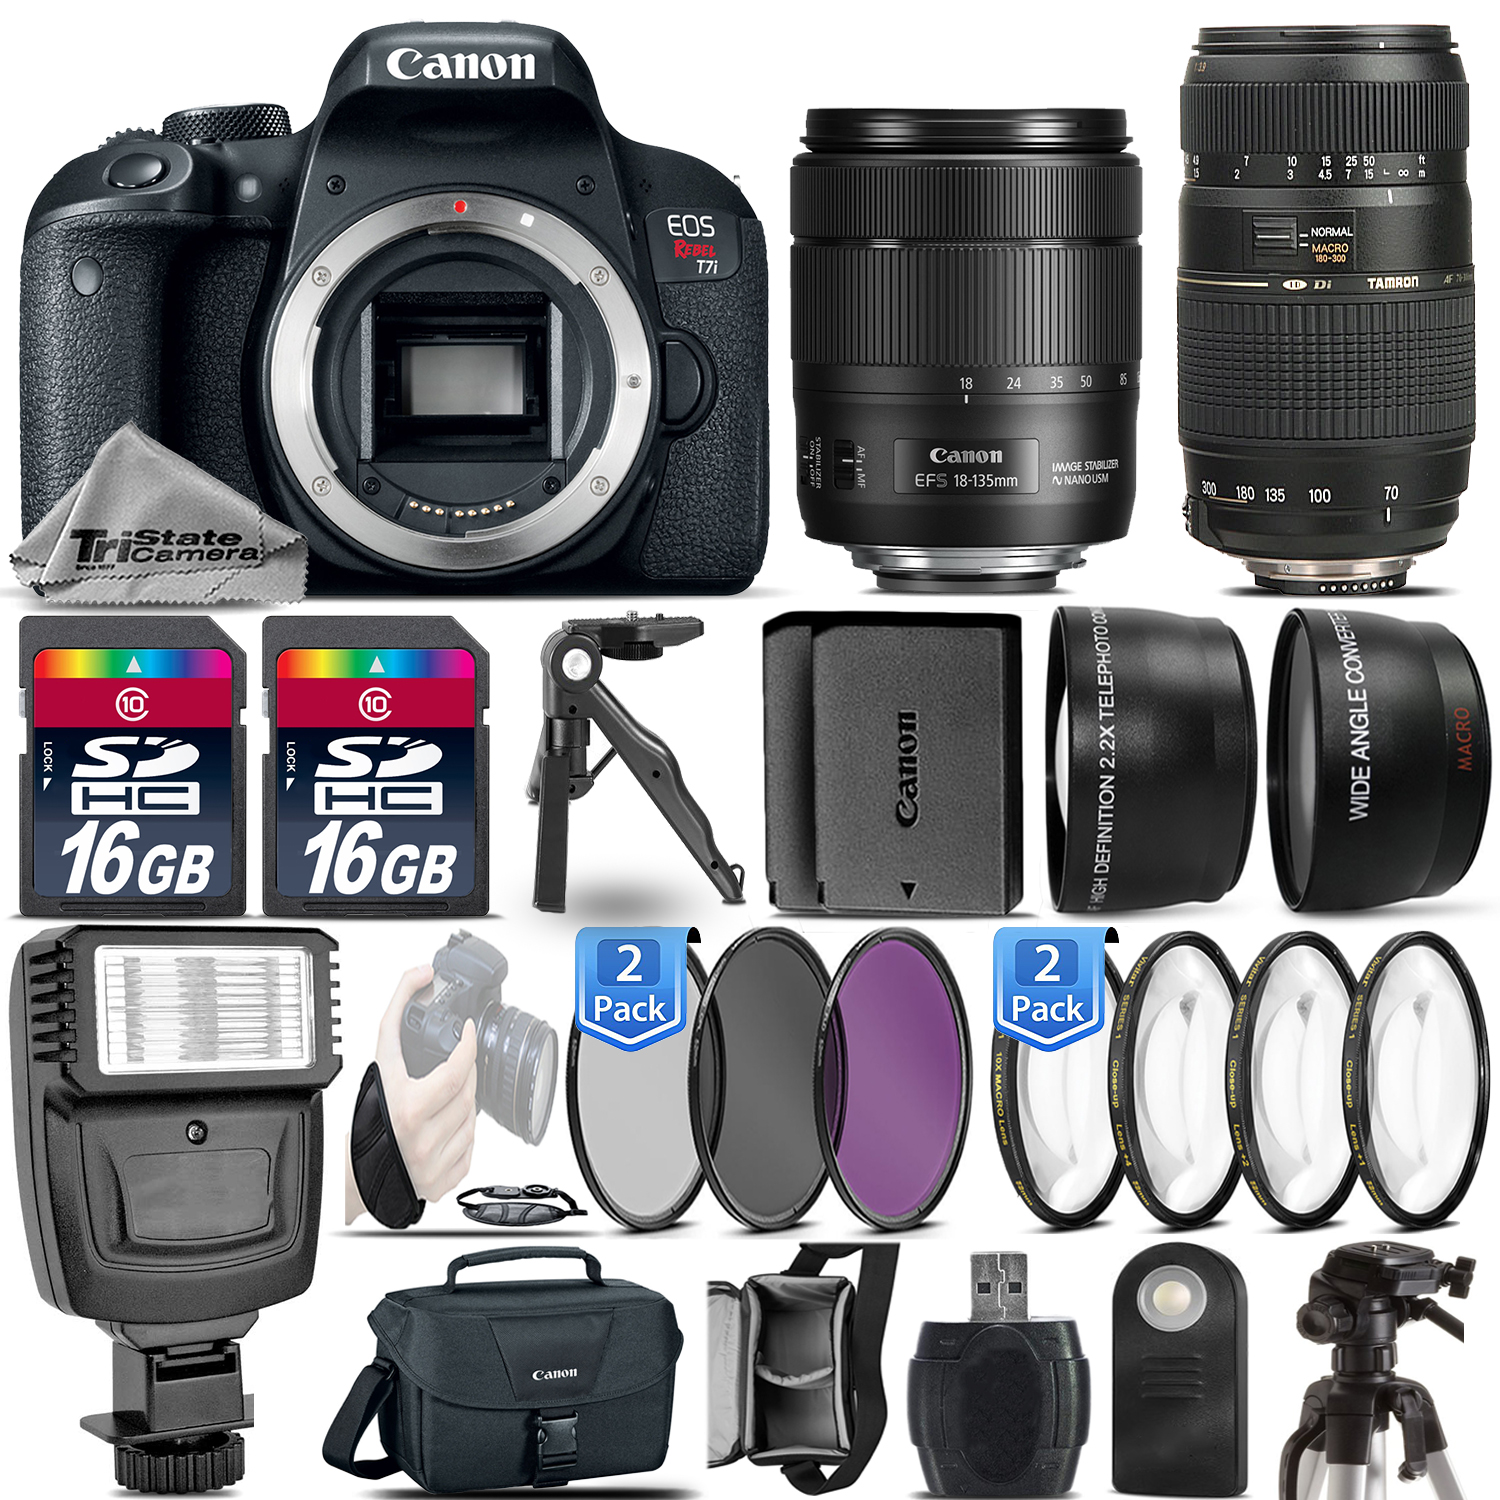 EOS Rebel T7i DSLR Camera + 18-135mm USM + 70-300mm + EXT BAT - 32GB Kit *FREE SHIPPING*